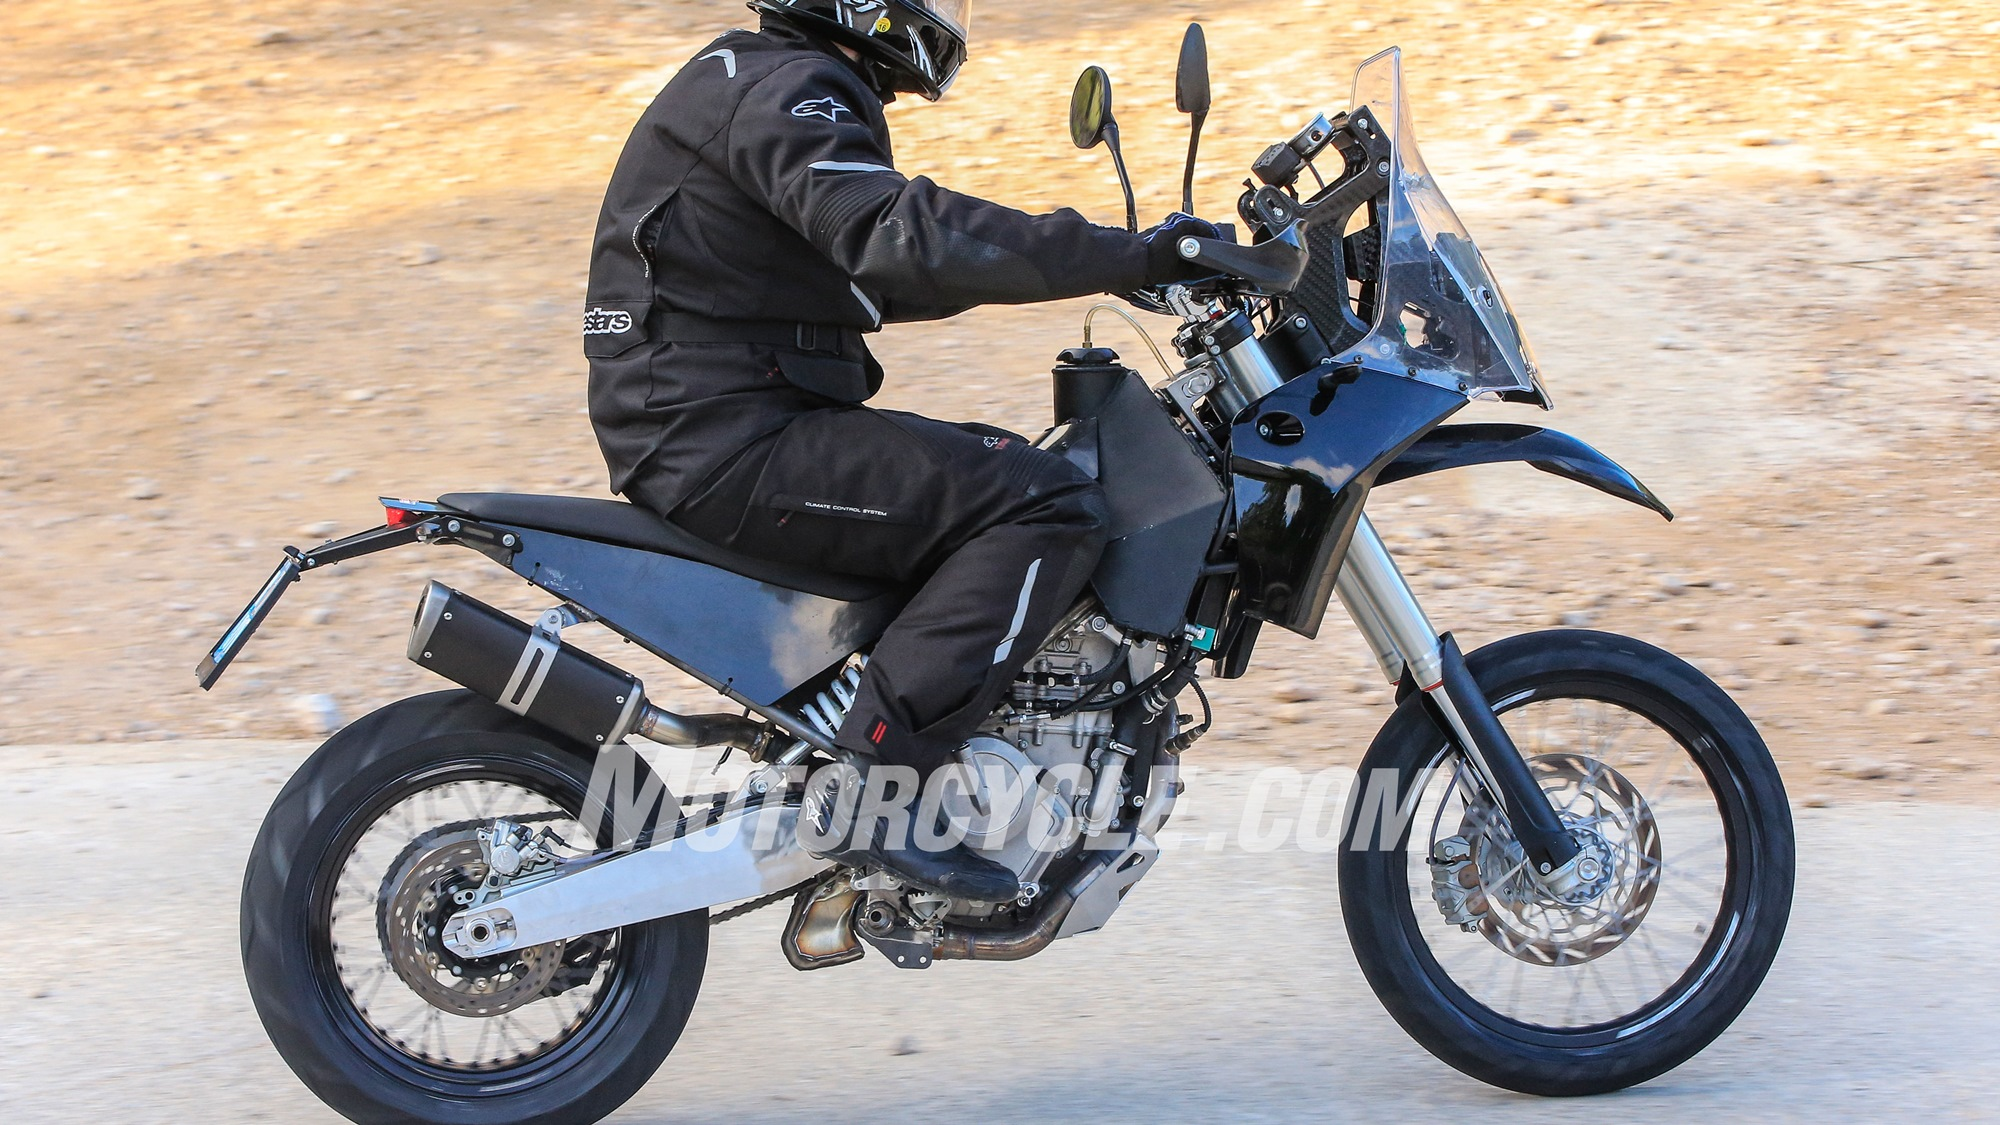 KTM 390 Adventure India launch in 2019 confirmed